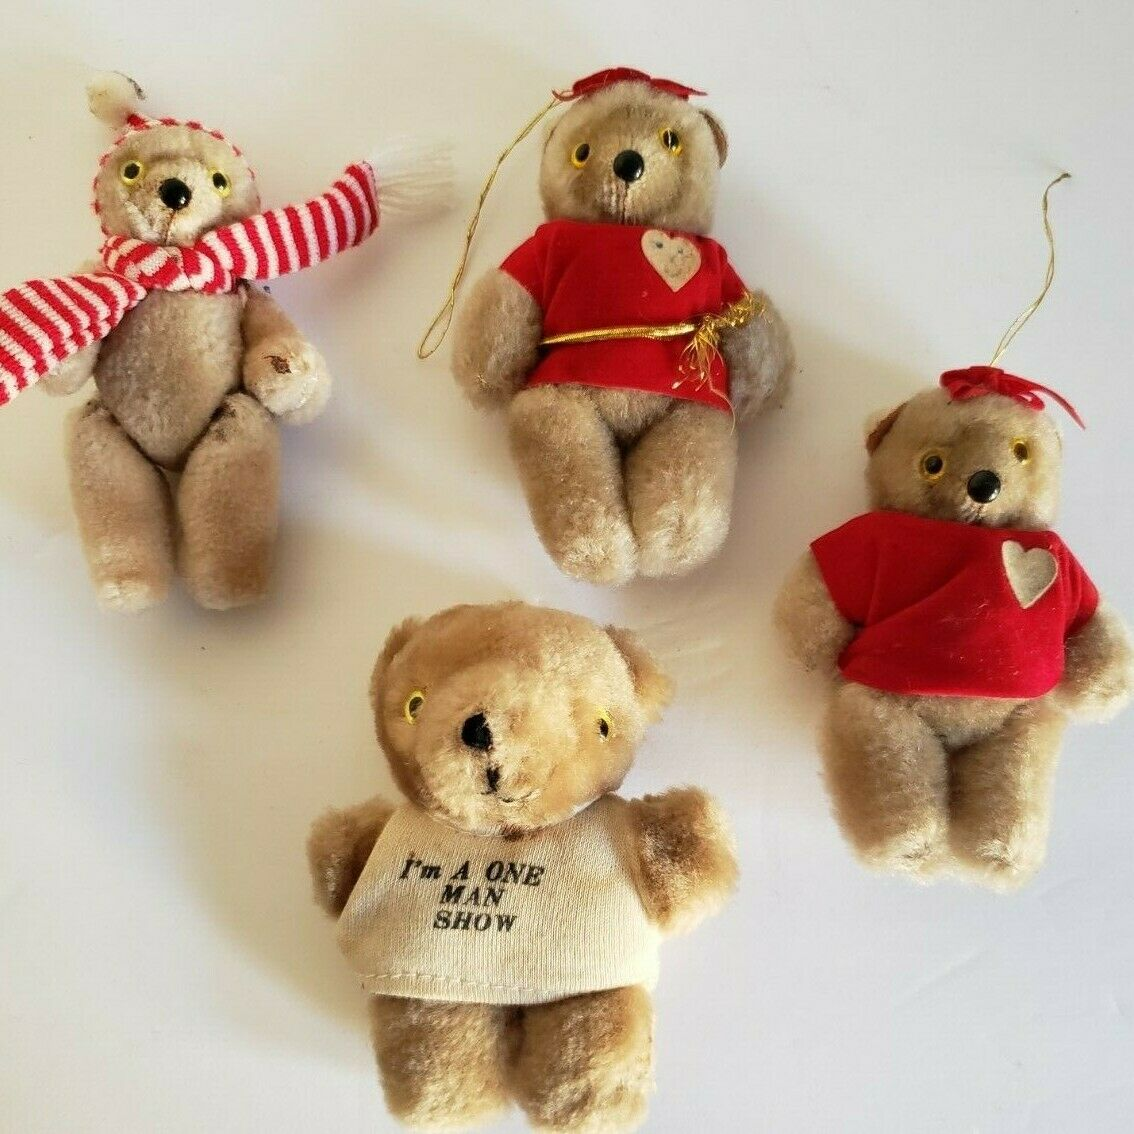 VINTAGE BEIGE JOINTED TEDDY BEARS LOT. Gelb EYES, MINIATURE NOVELTY, SOUVENIRS